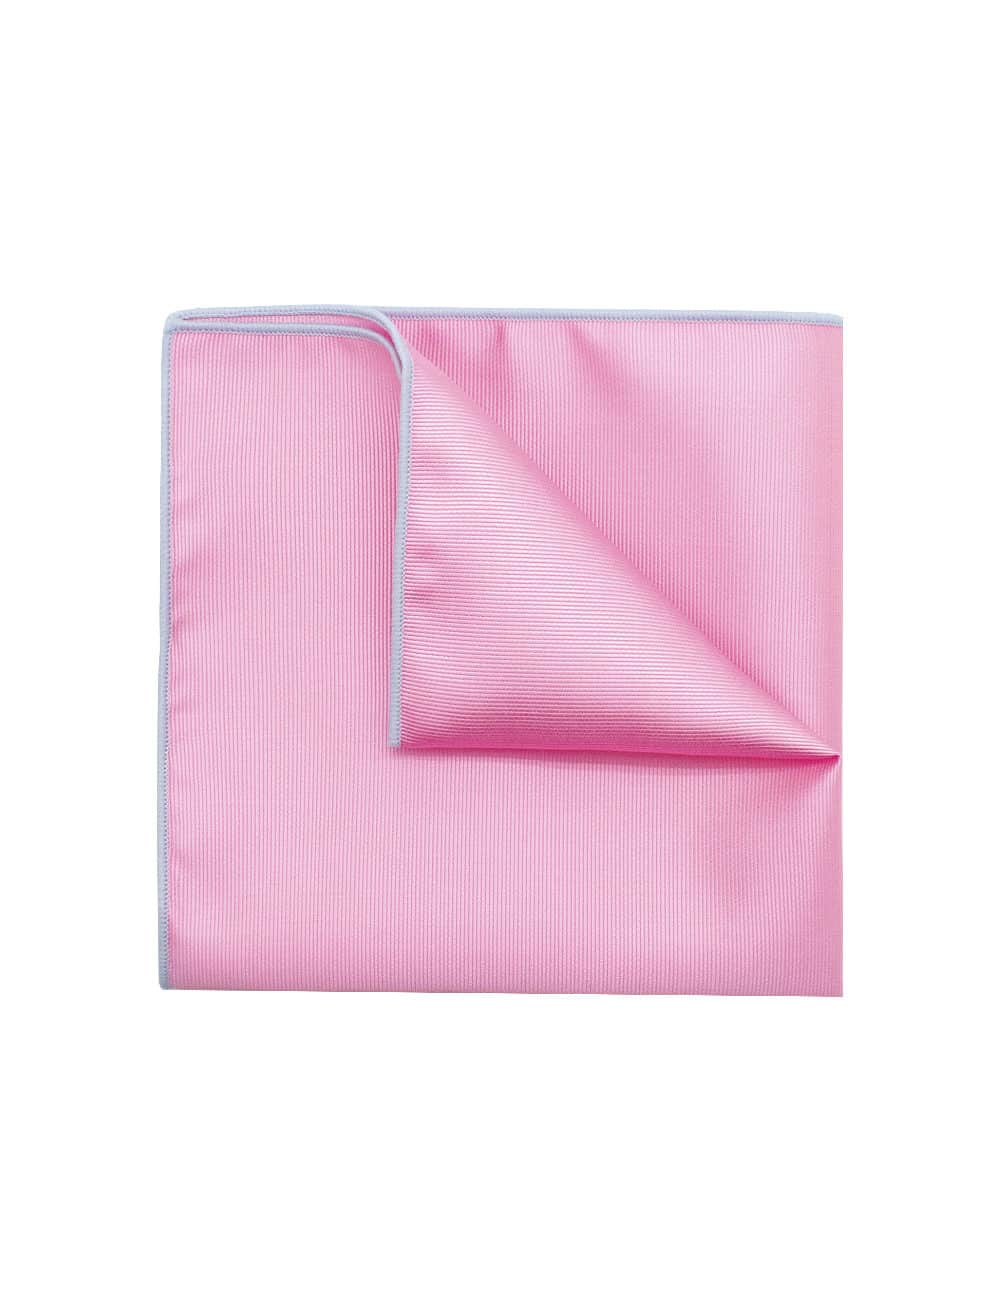 Solid Prism Pink Pocket Square PSQ30.6